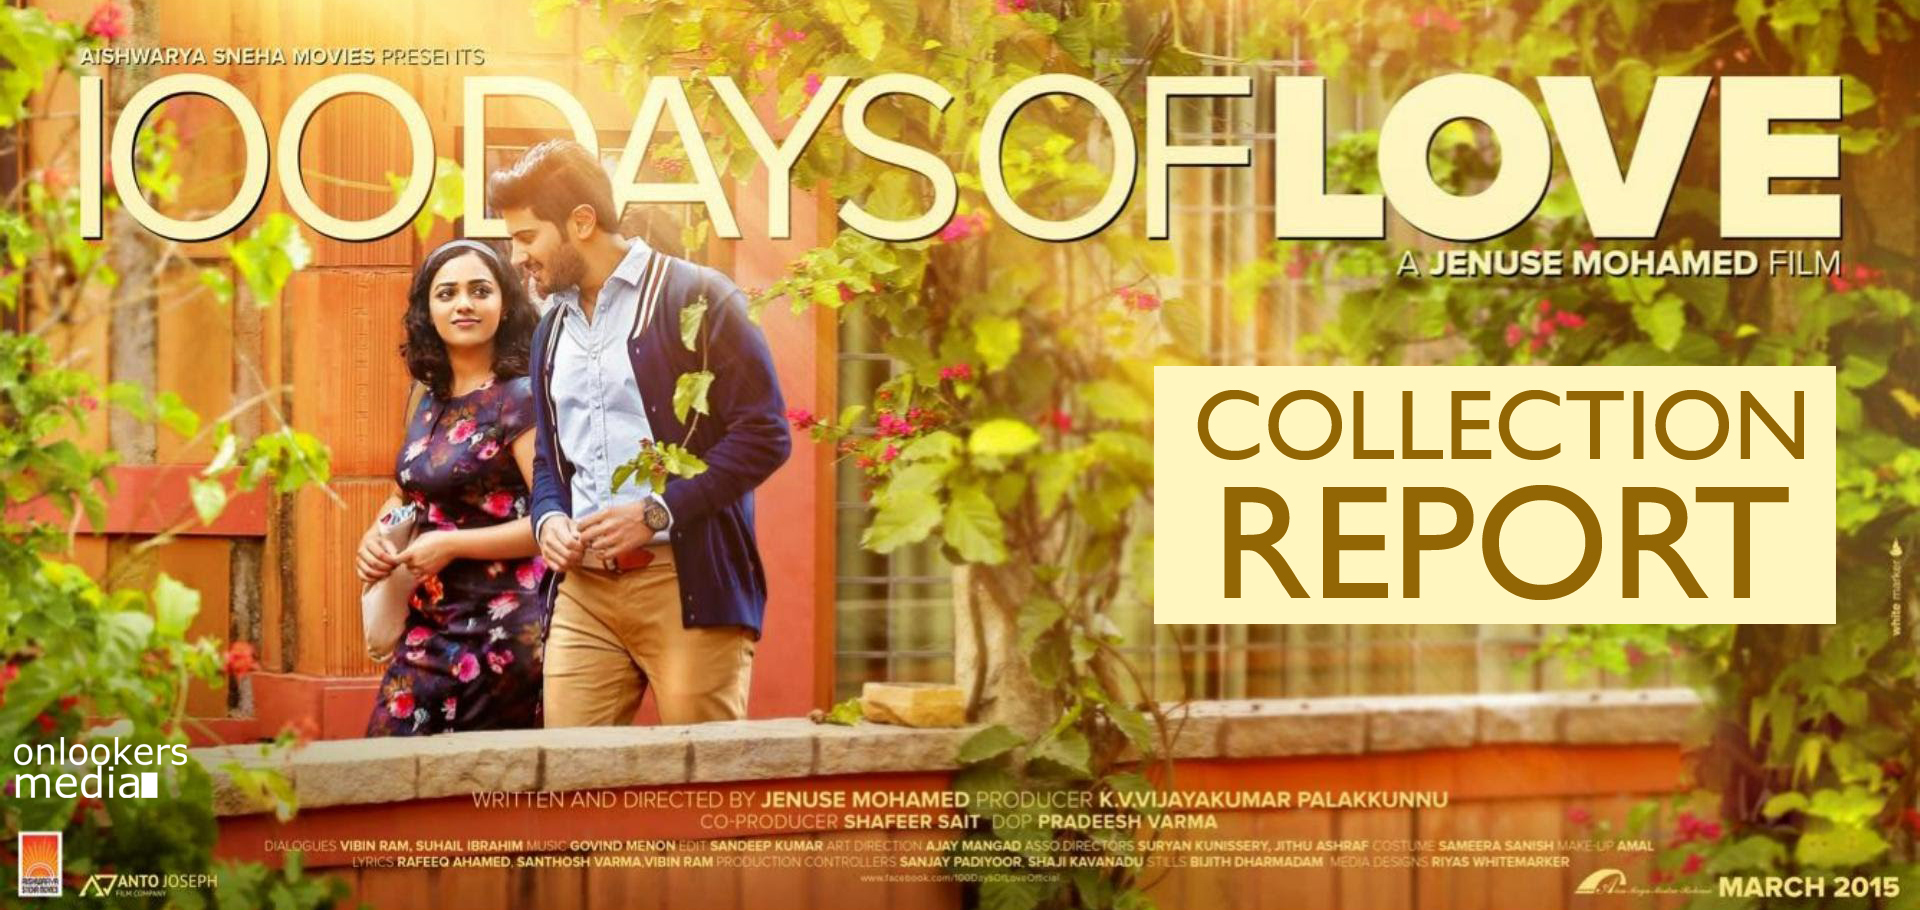 100 days of love collection report-hit chart-dulquer salmaan-nithya menon-shekhar menon-malayalam movie 2015-onlookers media